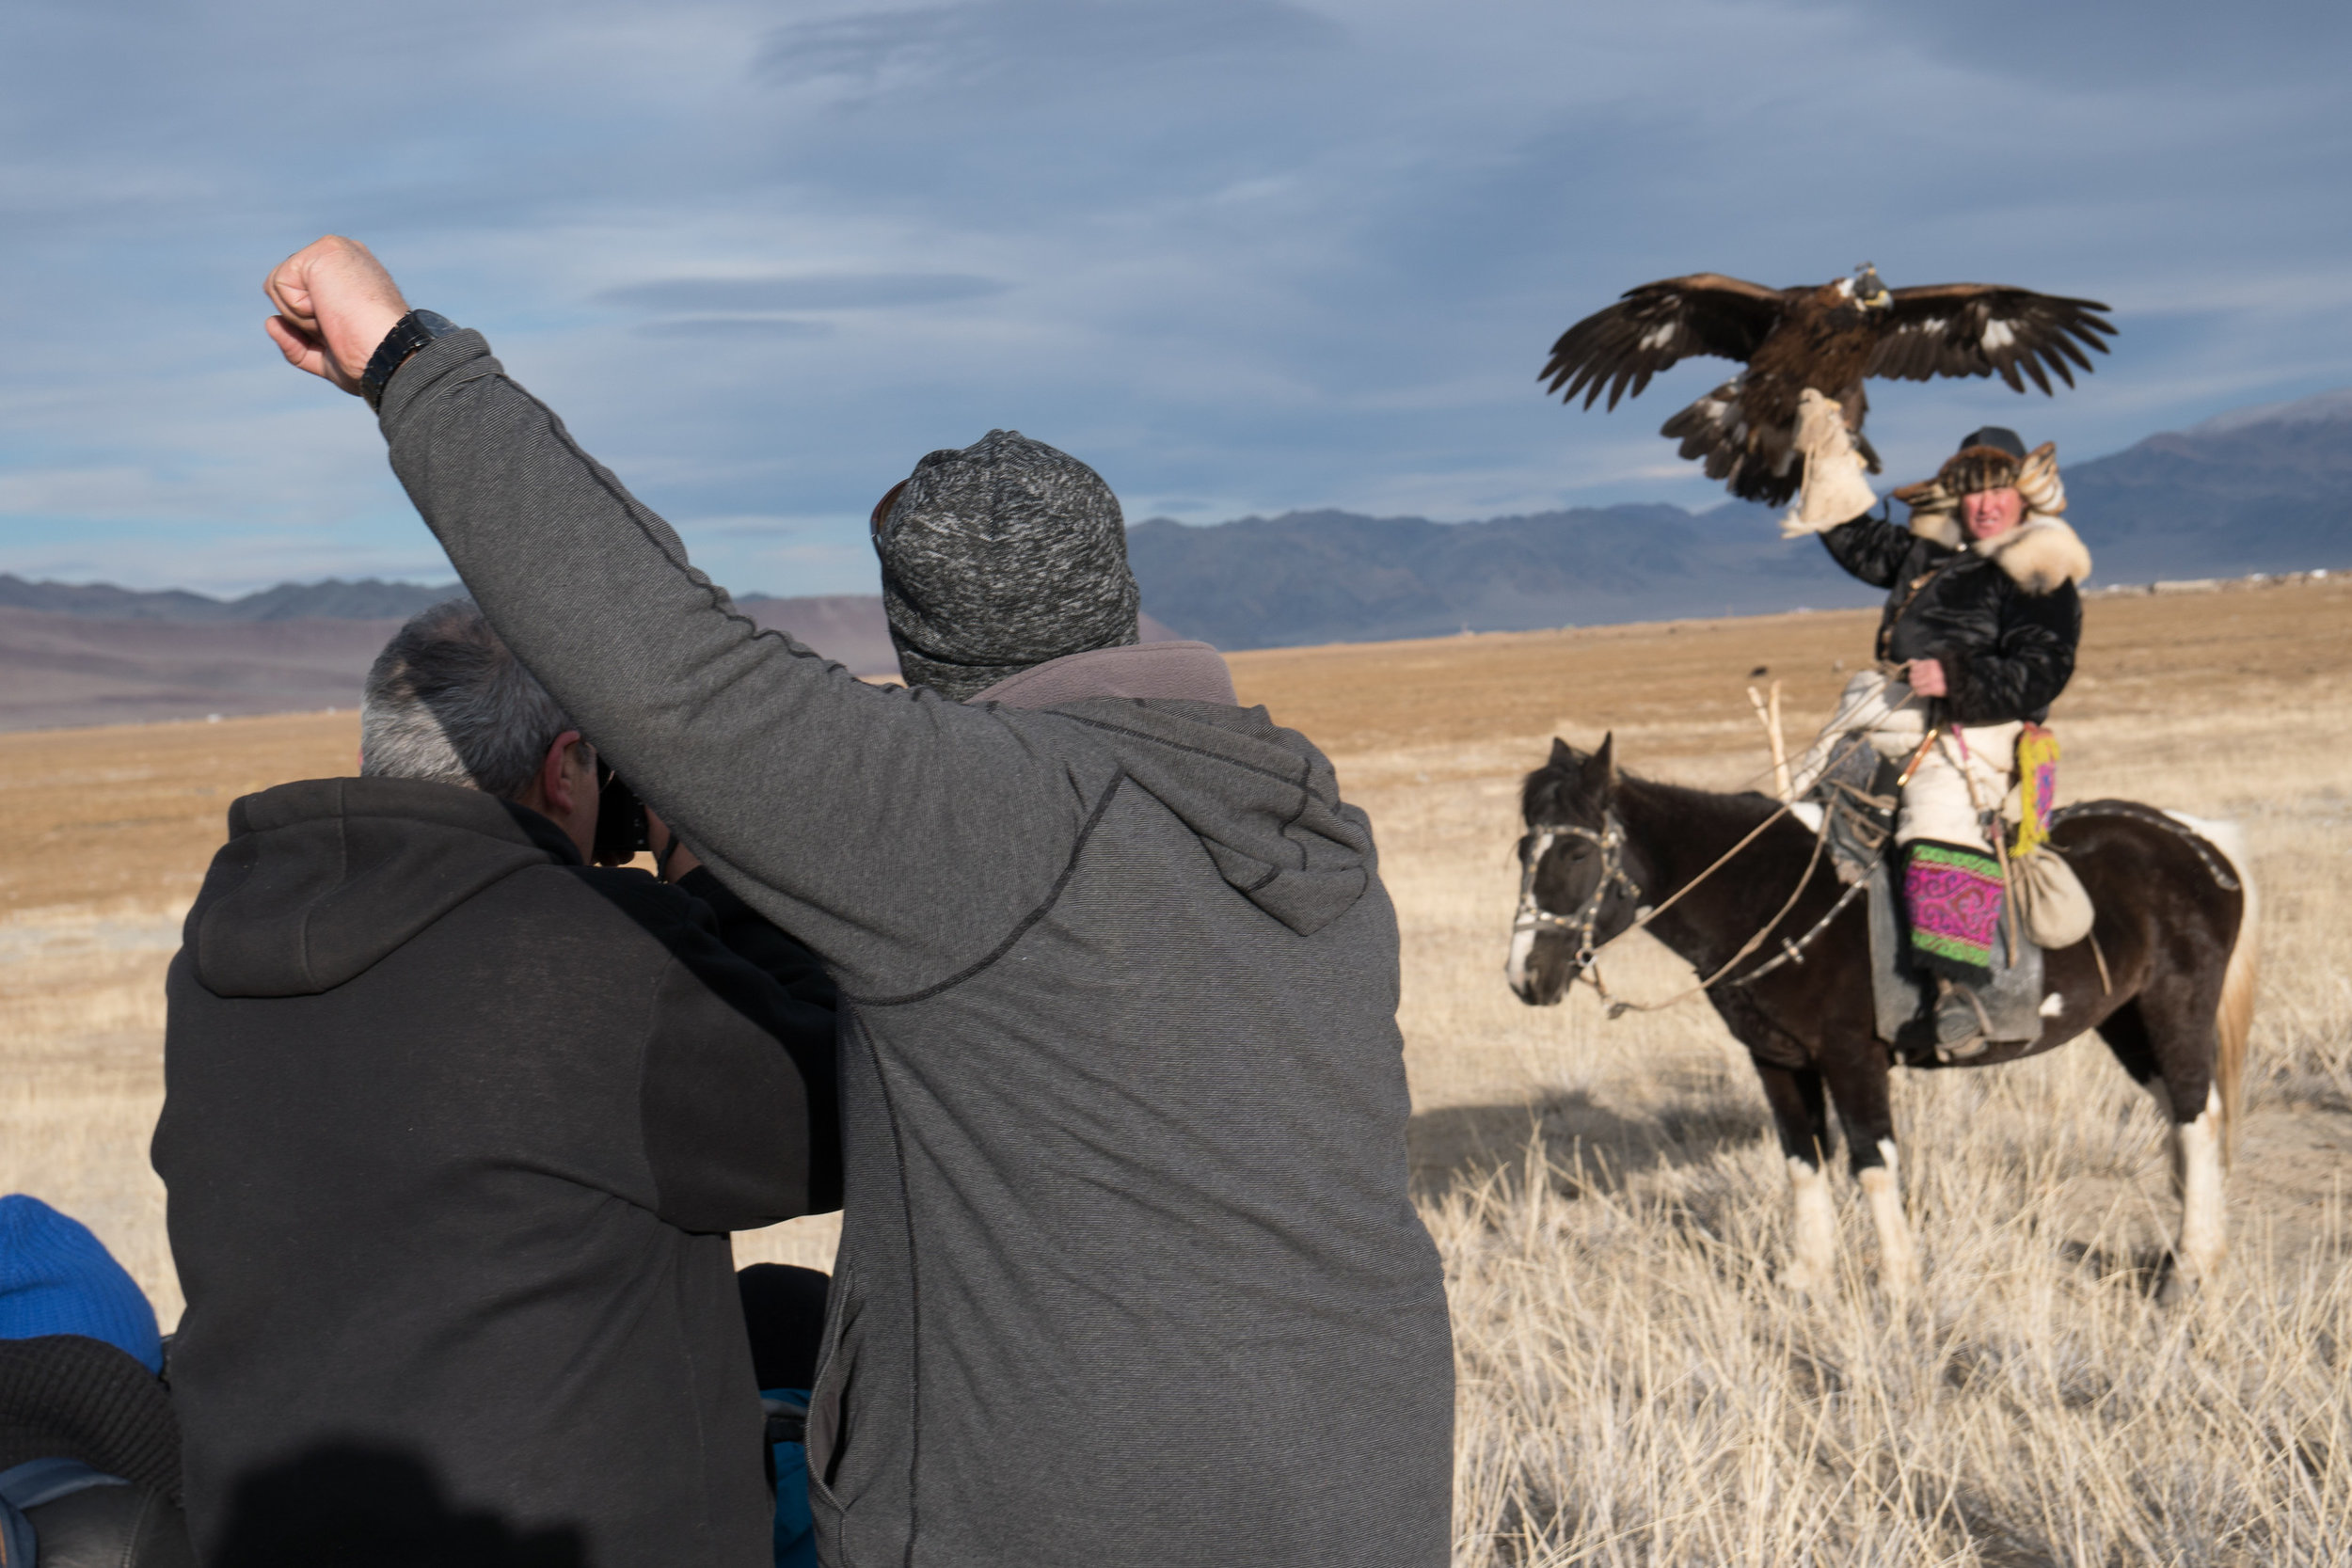 Giving the Eagle Hunter somewhere to look so the client can get a better shot